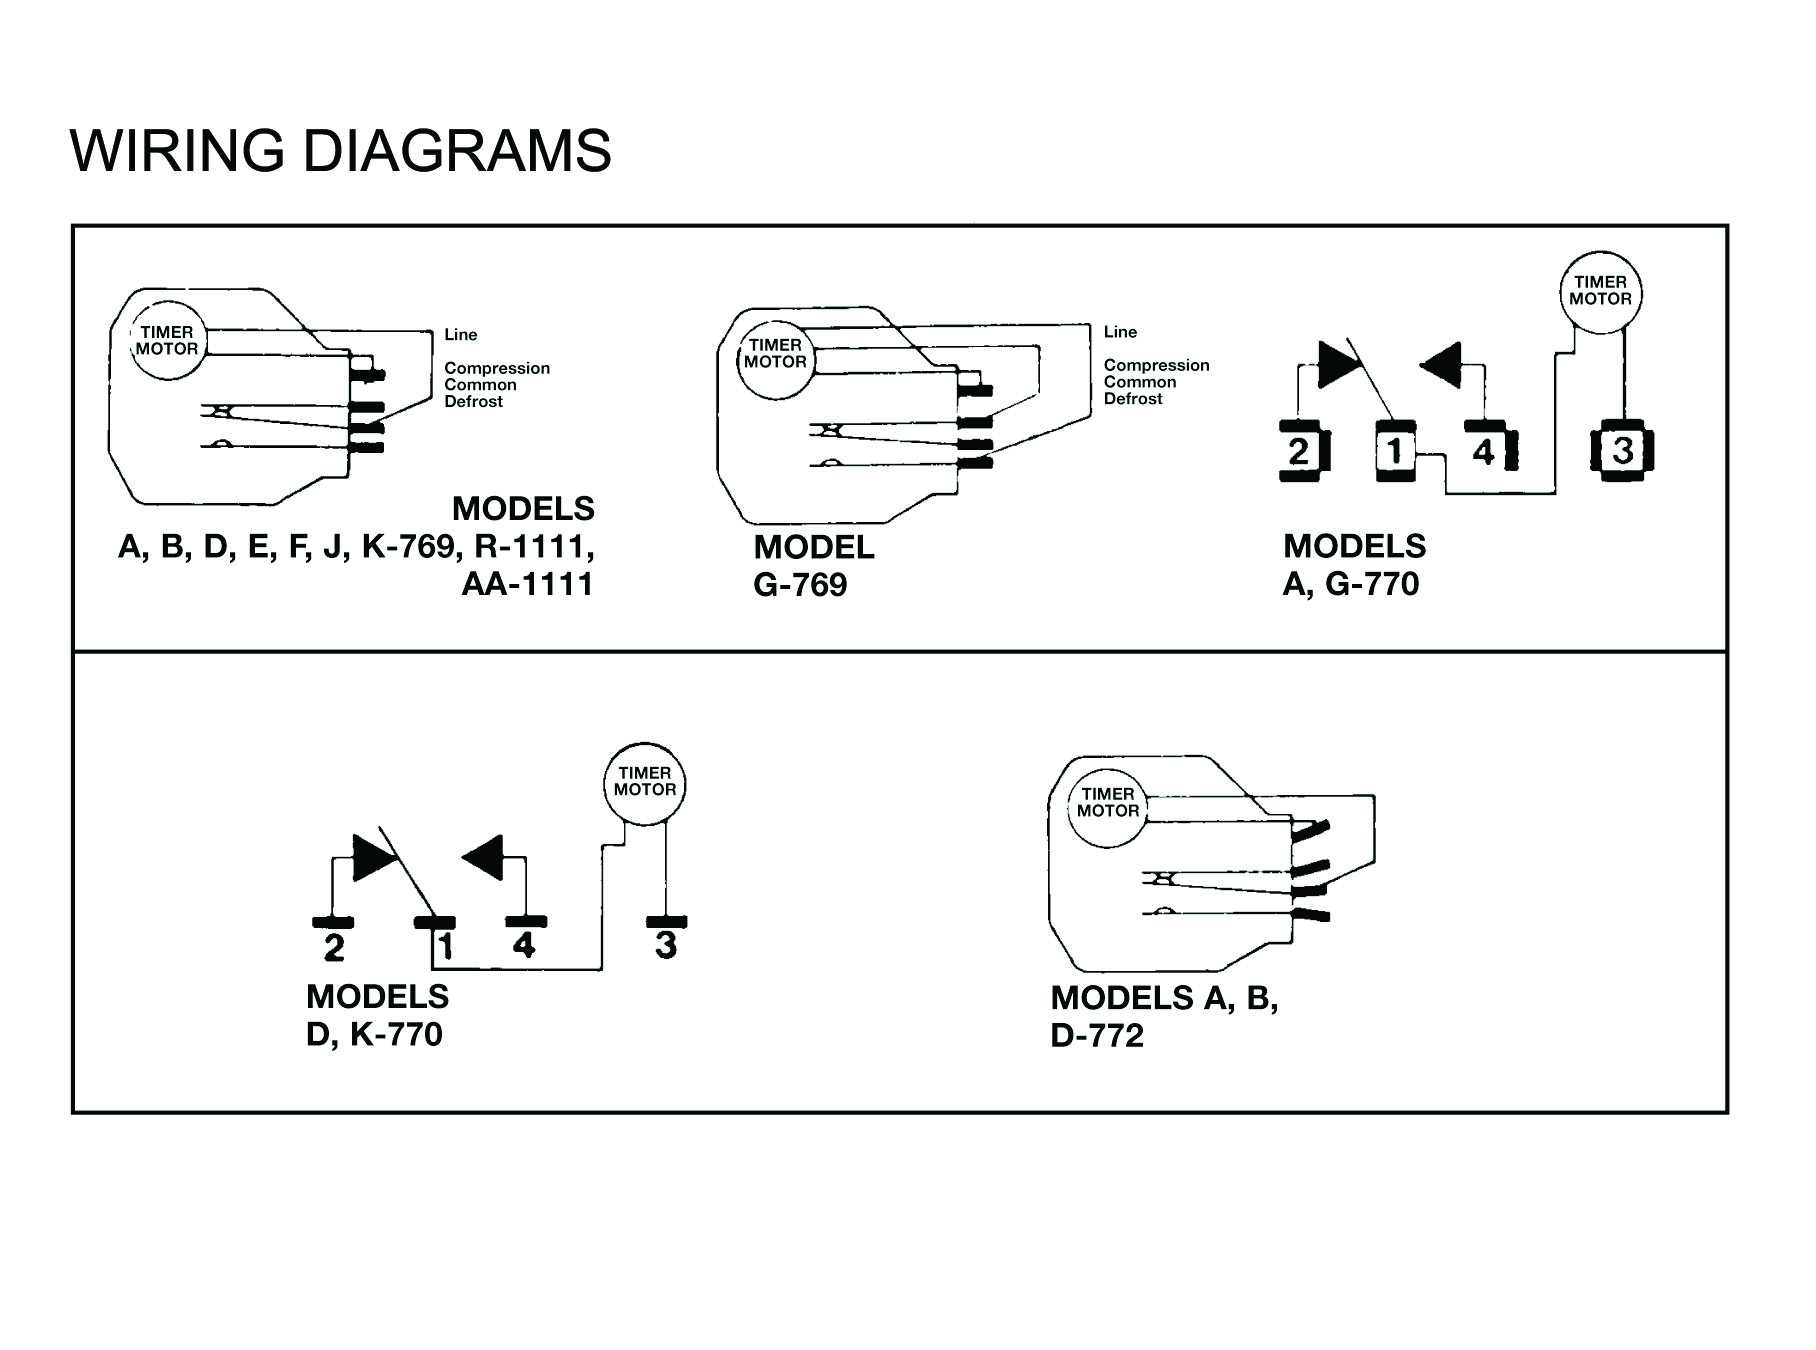 paragon defrost timer 8145 20 wiring diagram paragon paragon timer wiring diagram solidfonts on paragon defrost timer 8145 20 wiring diagram